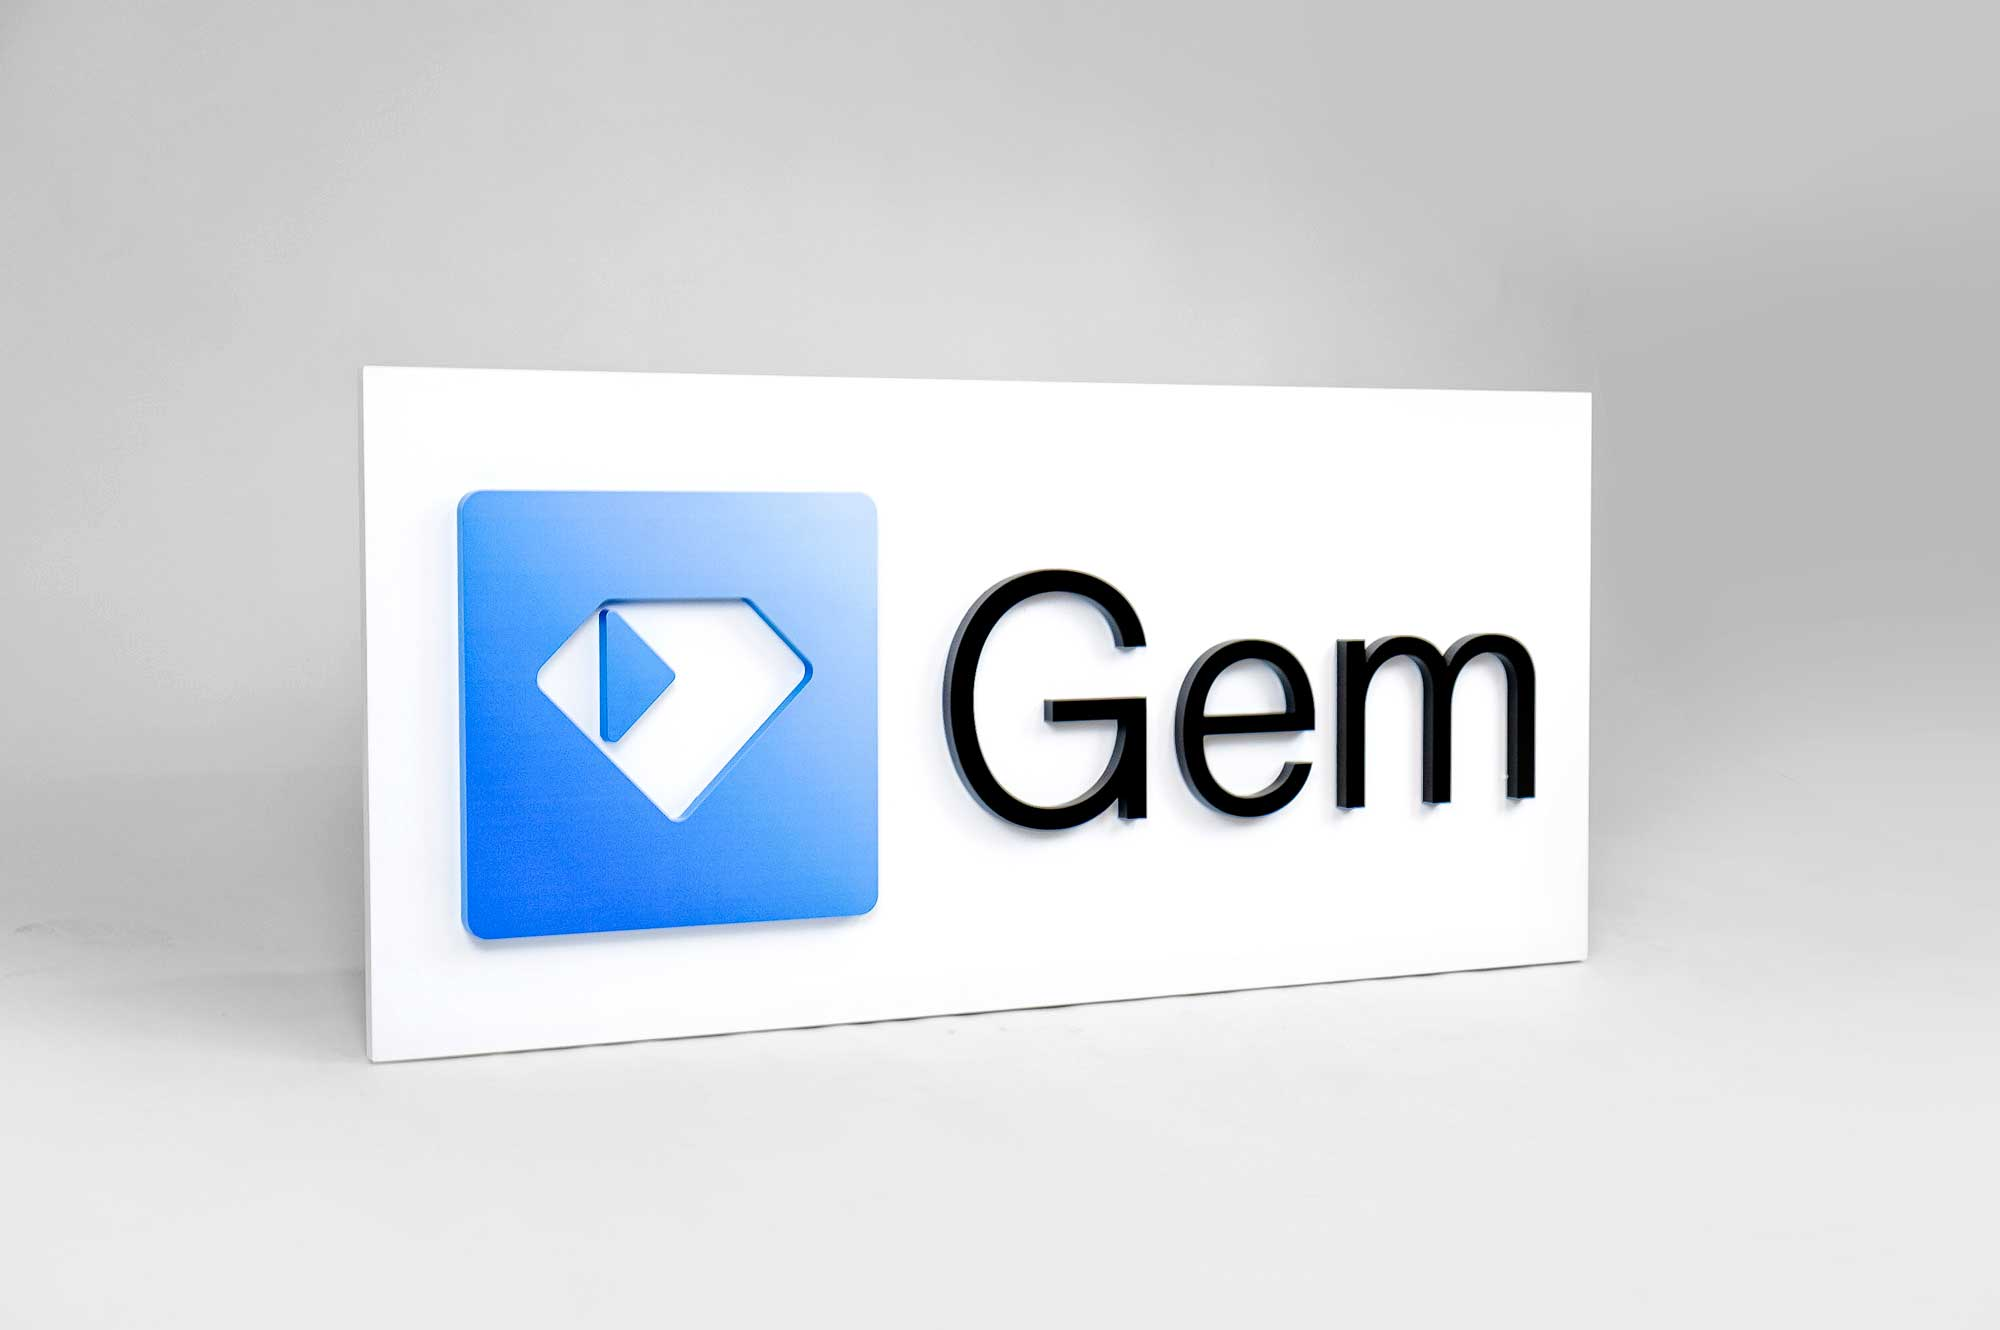 Blue gradient logo with black text on white backer board for Gem, a San Francisco based company creating all-in-one recruiting platform.